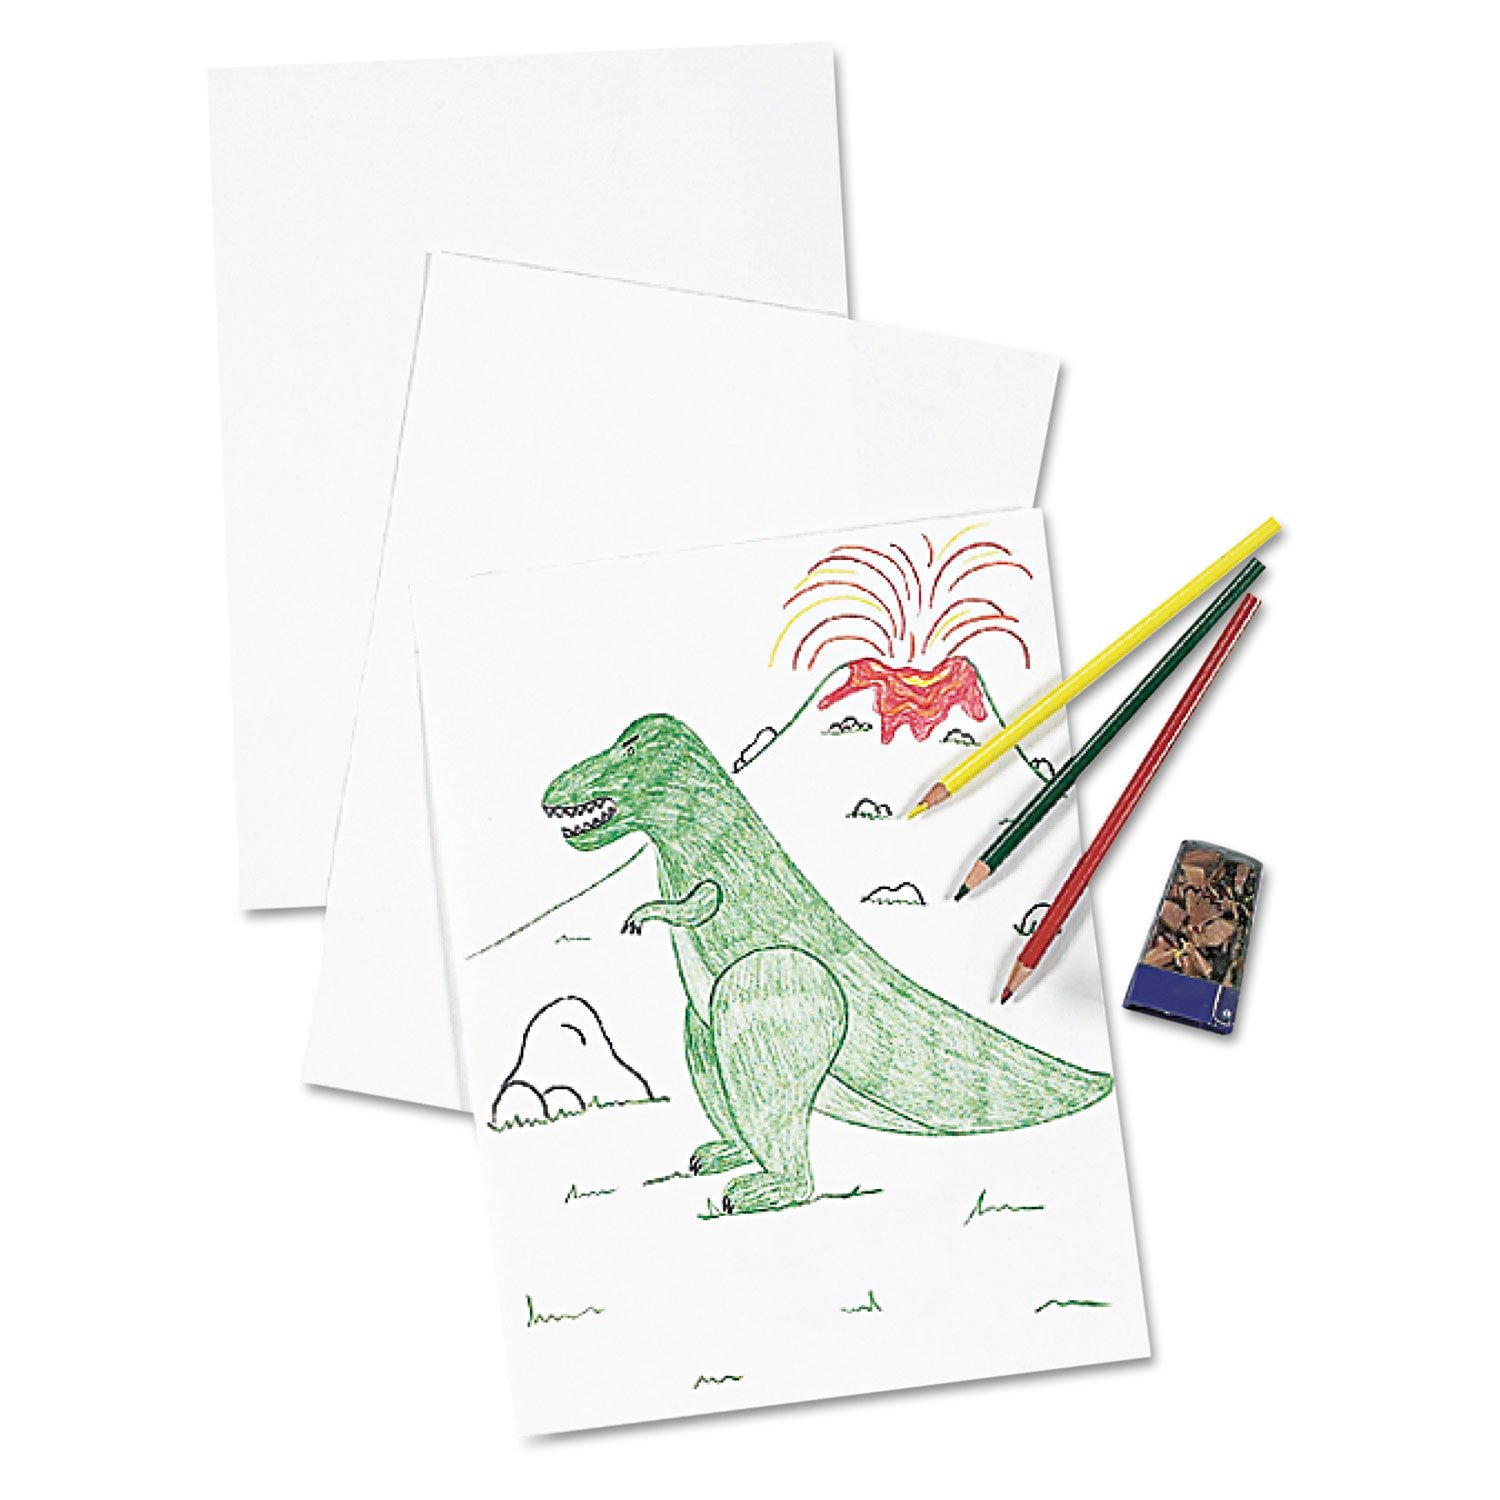 Pacon White Drawing Paper, Heavyweight, 24 x 36 Inches, 250 Sheets (4726)